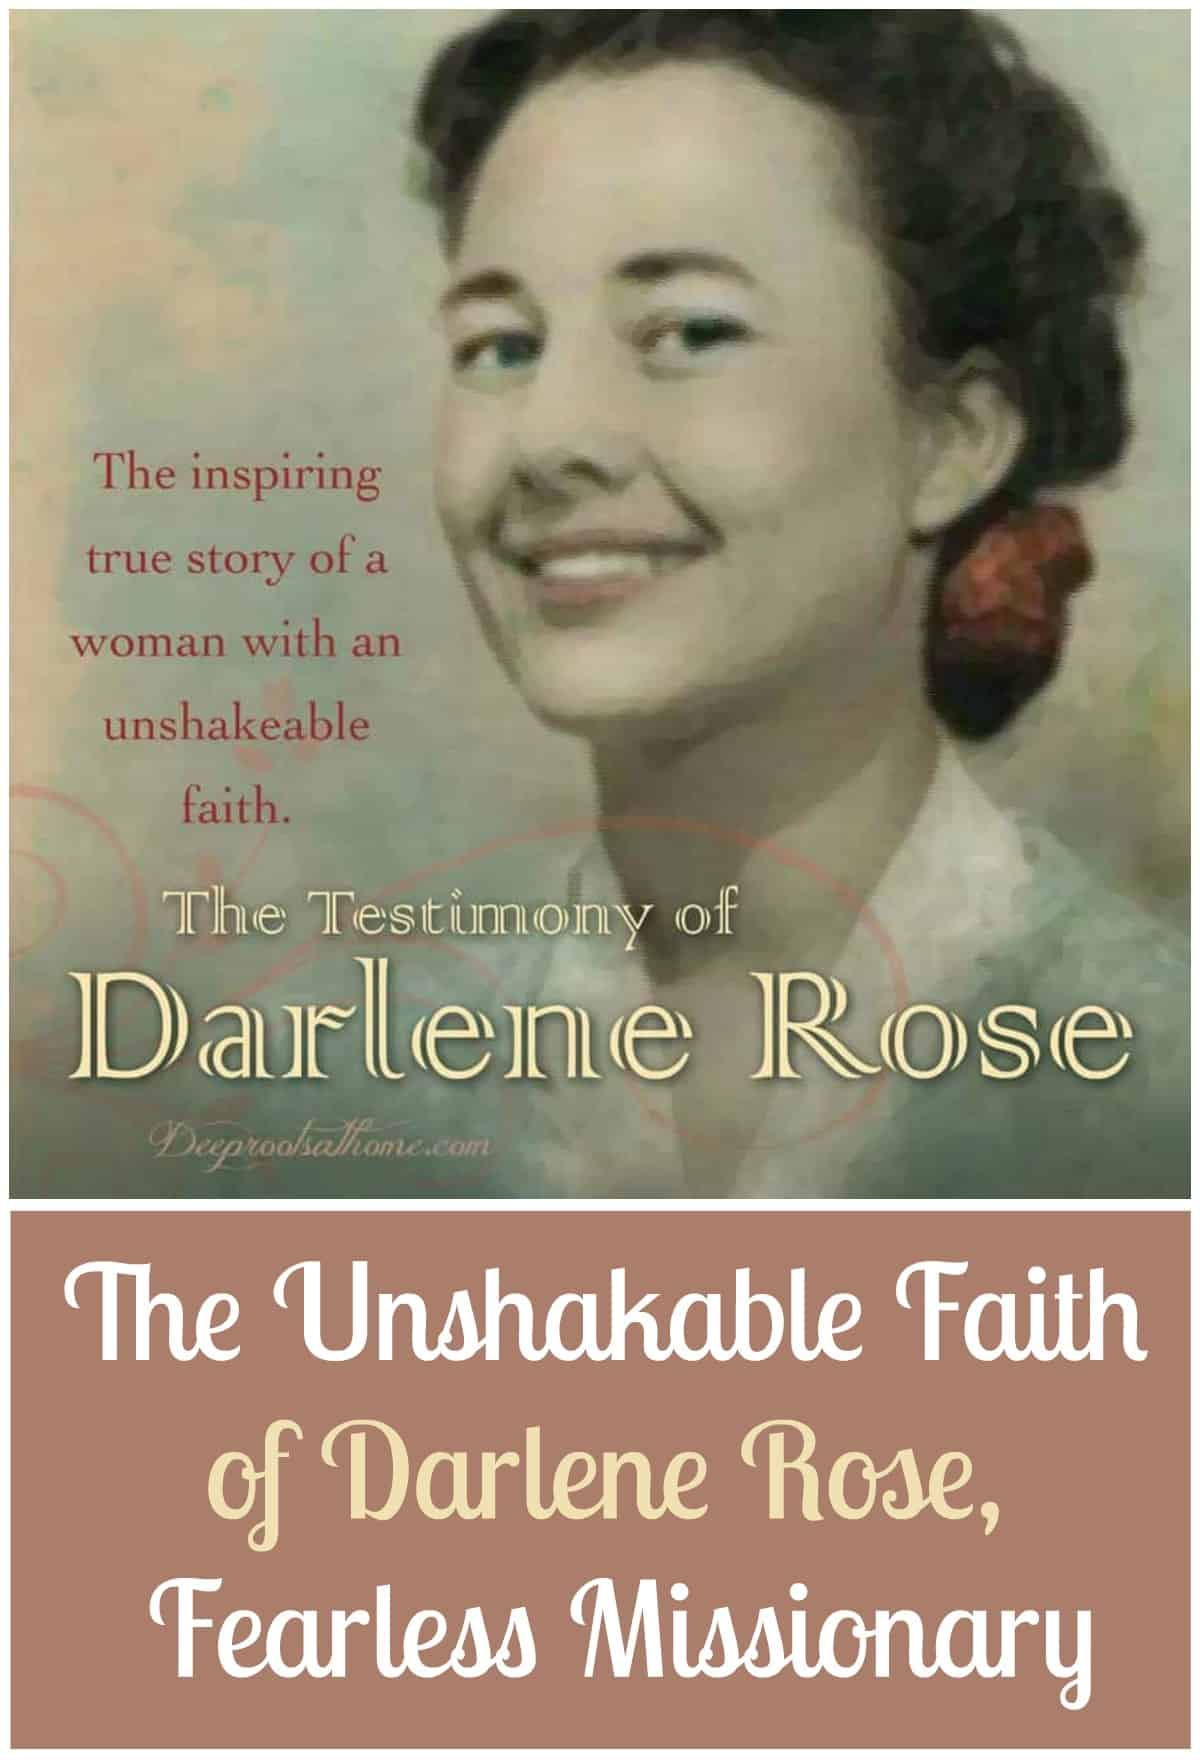 The Unshakable Faith of Darlene Rose, Fearless Missionary. A smiling Darlene Diebler Rose and her testimony of faith.